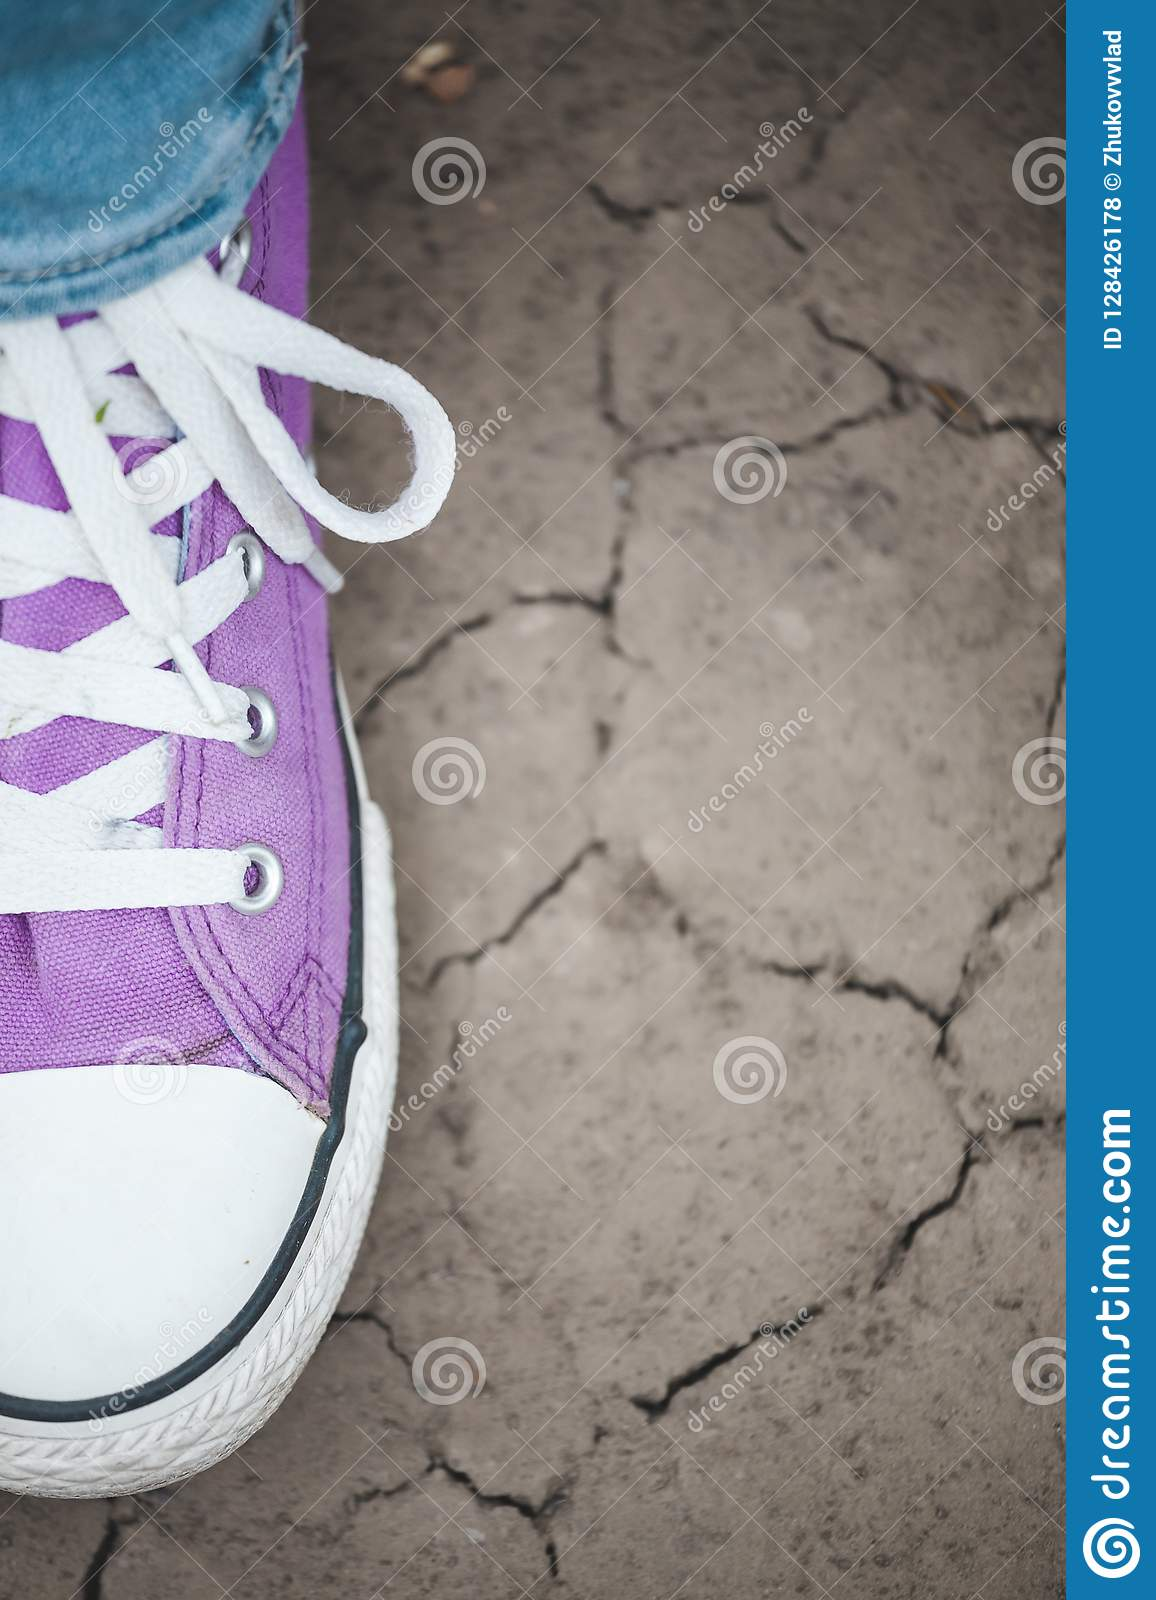 ef0290bbe68722 One violet sneaker on the cracked earth stock photo image jpg 1156x1600 Purple  earth shoes